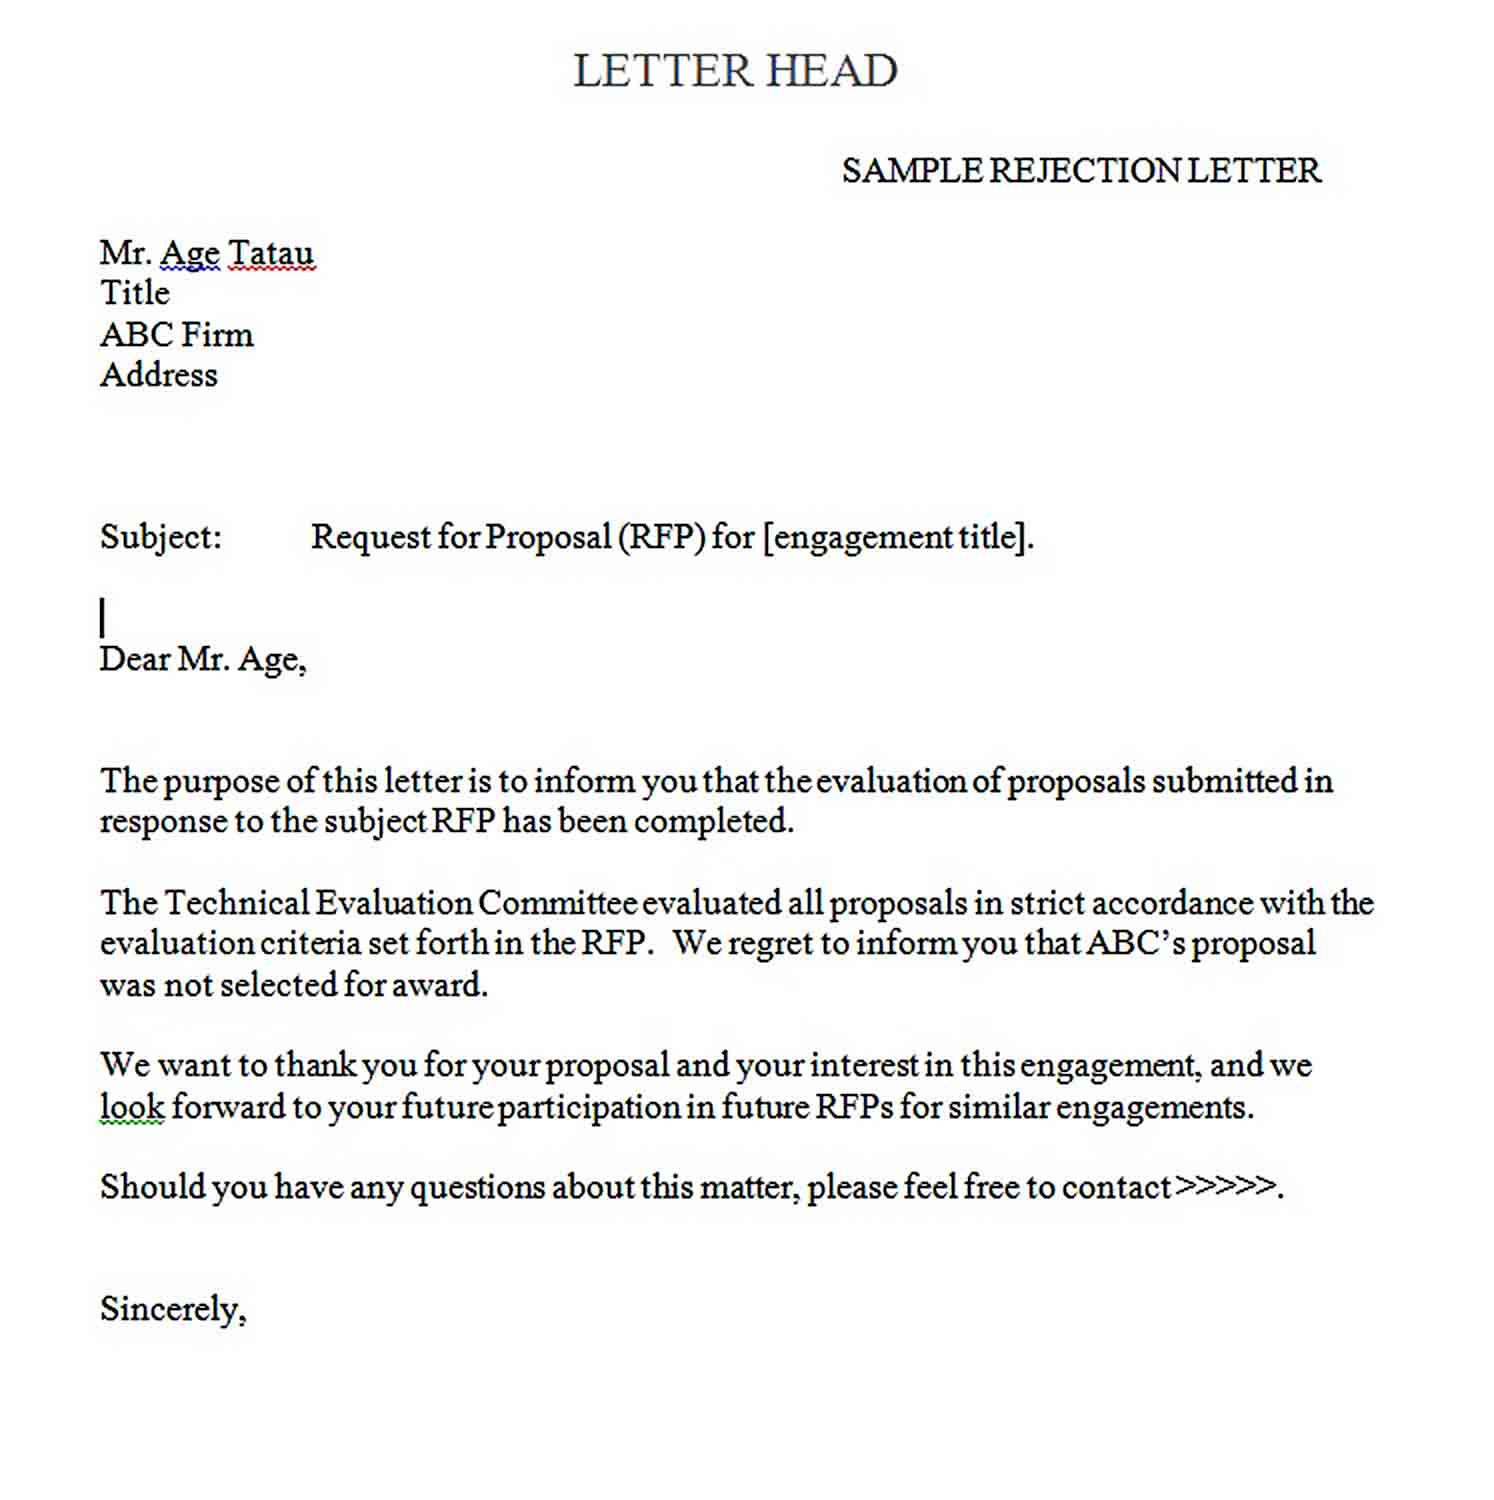 Templates Request For Proposal Rejection Letter